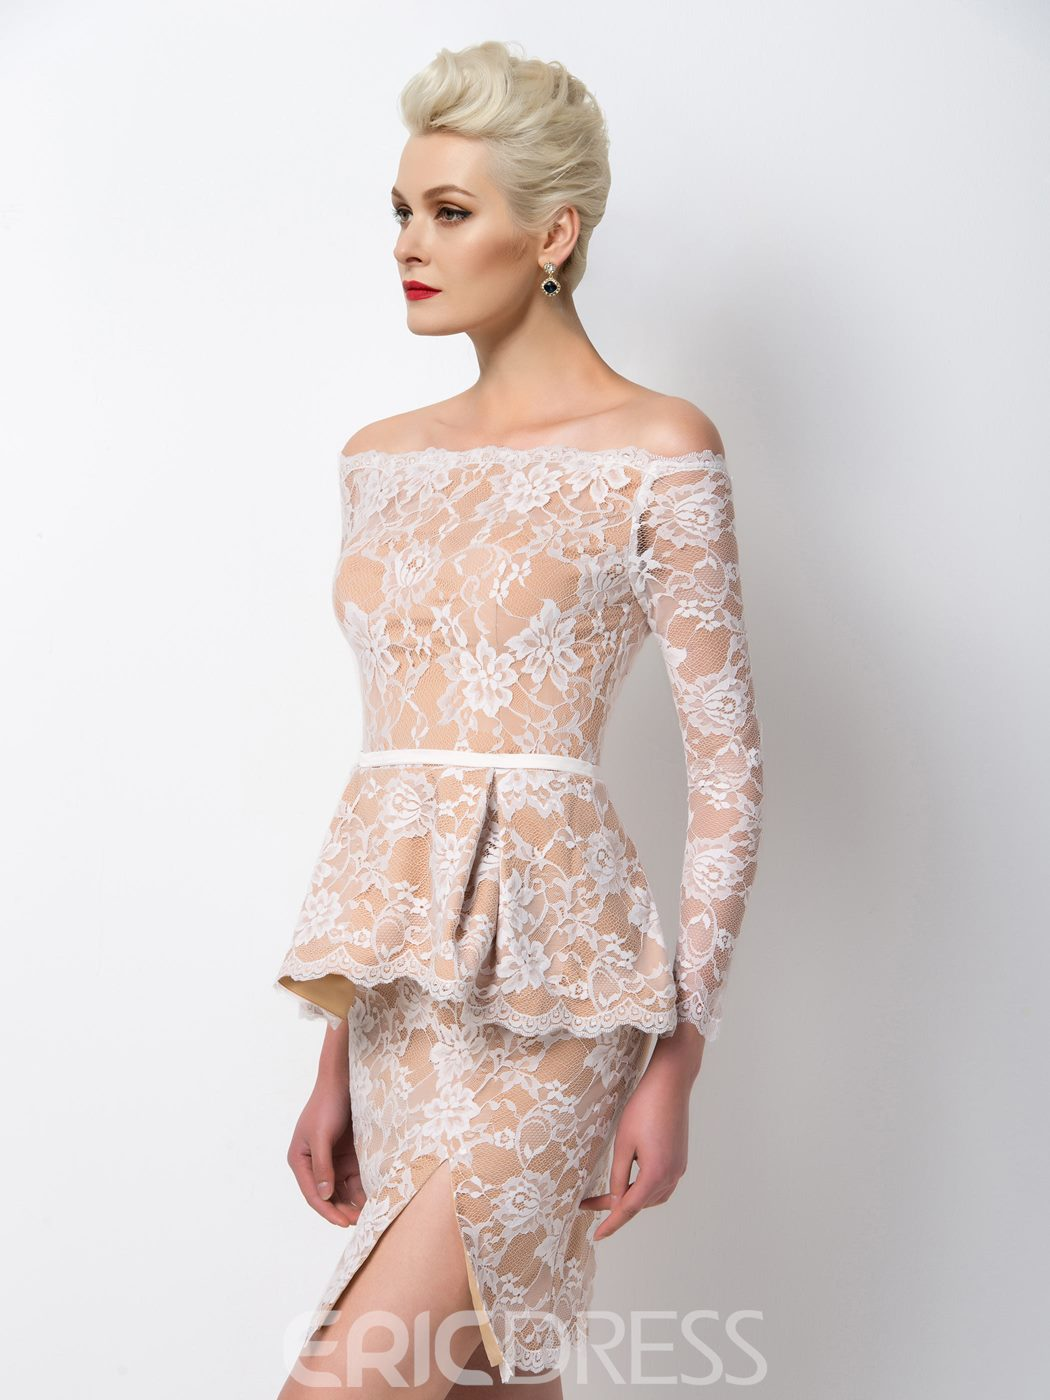 Ericdress Modern Off-The-Shoulder Lace Peplum Cocktail Dress